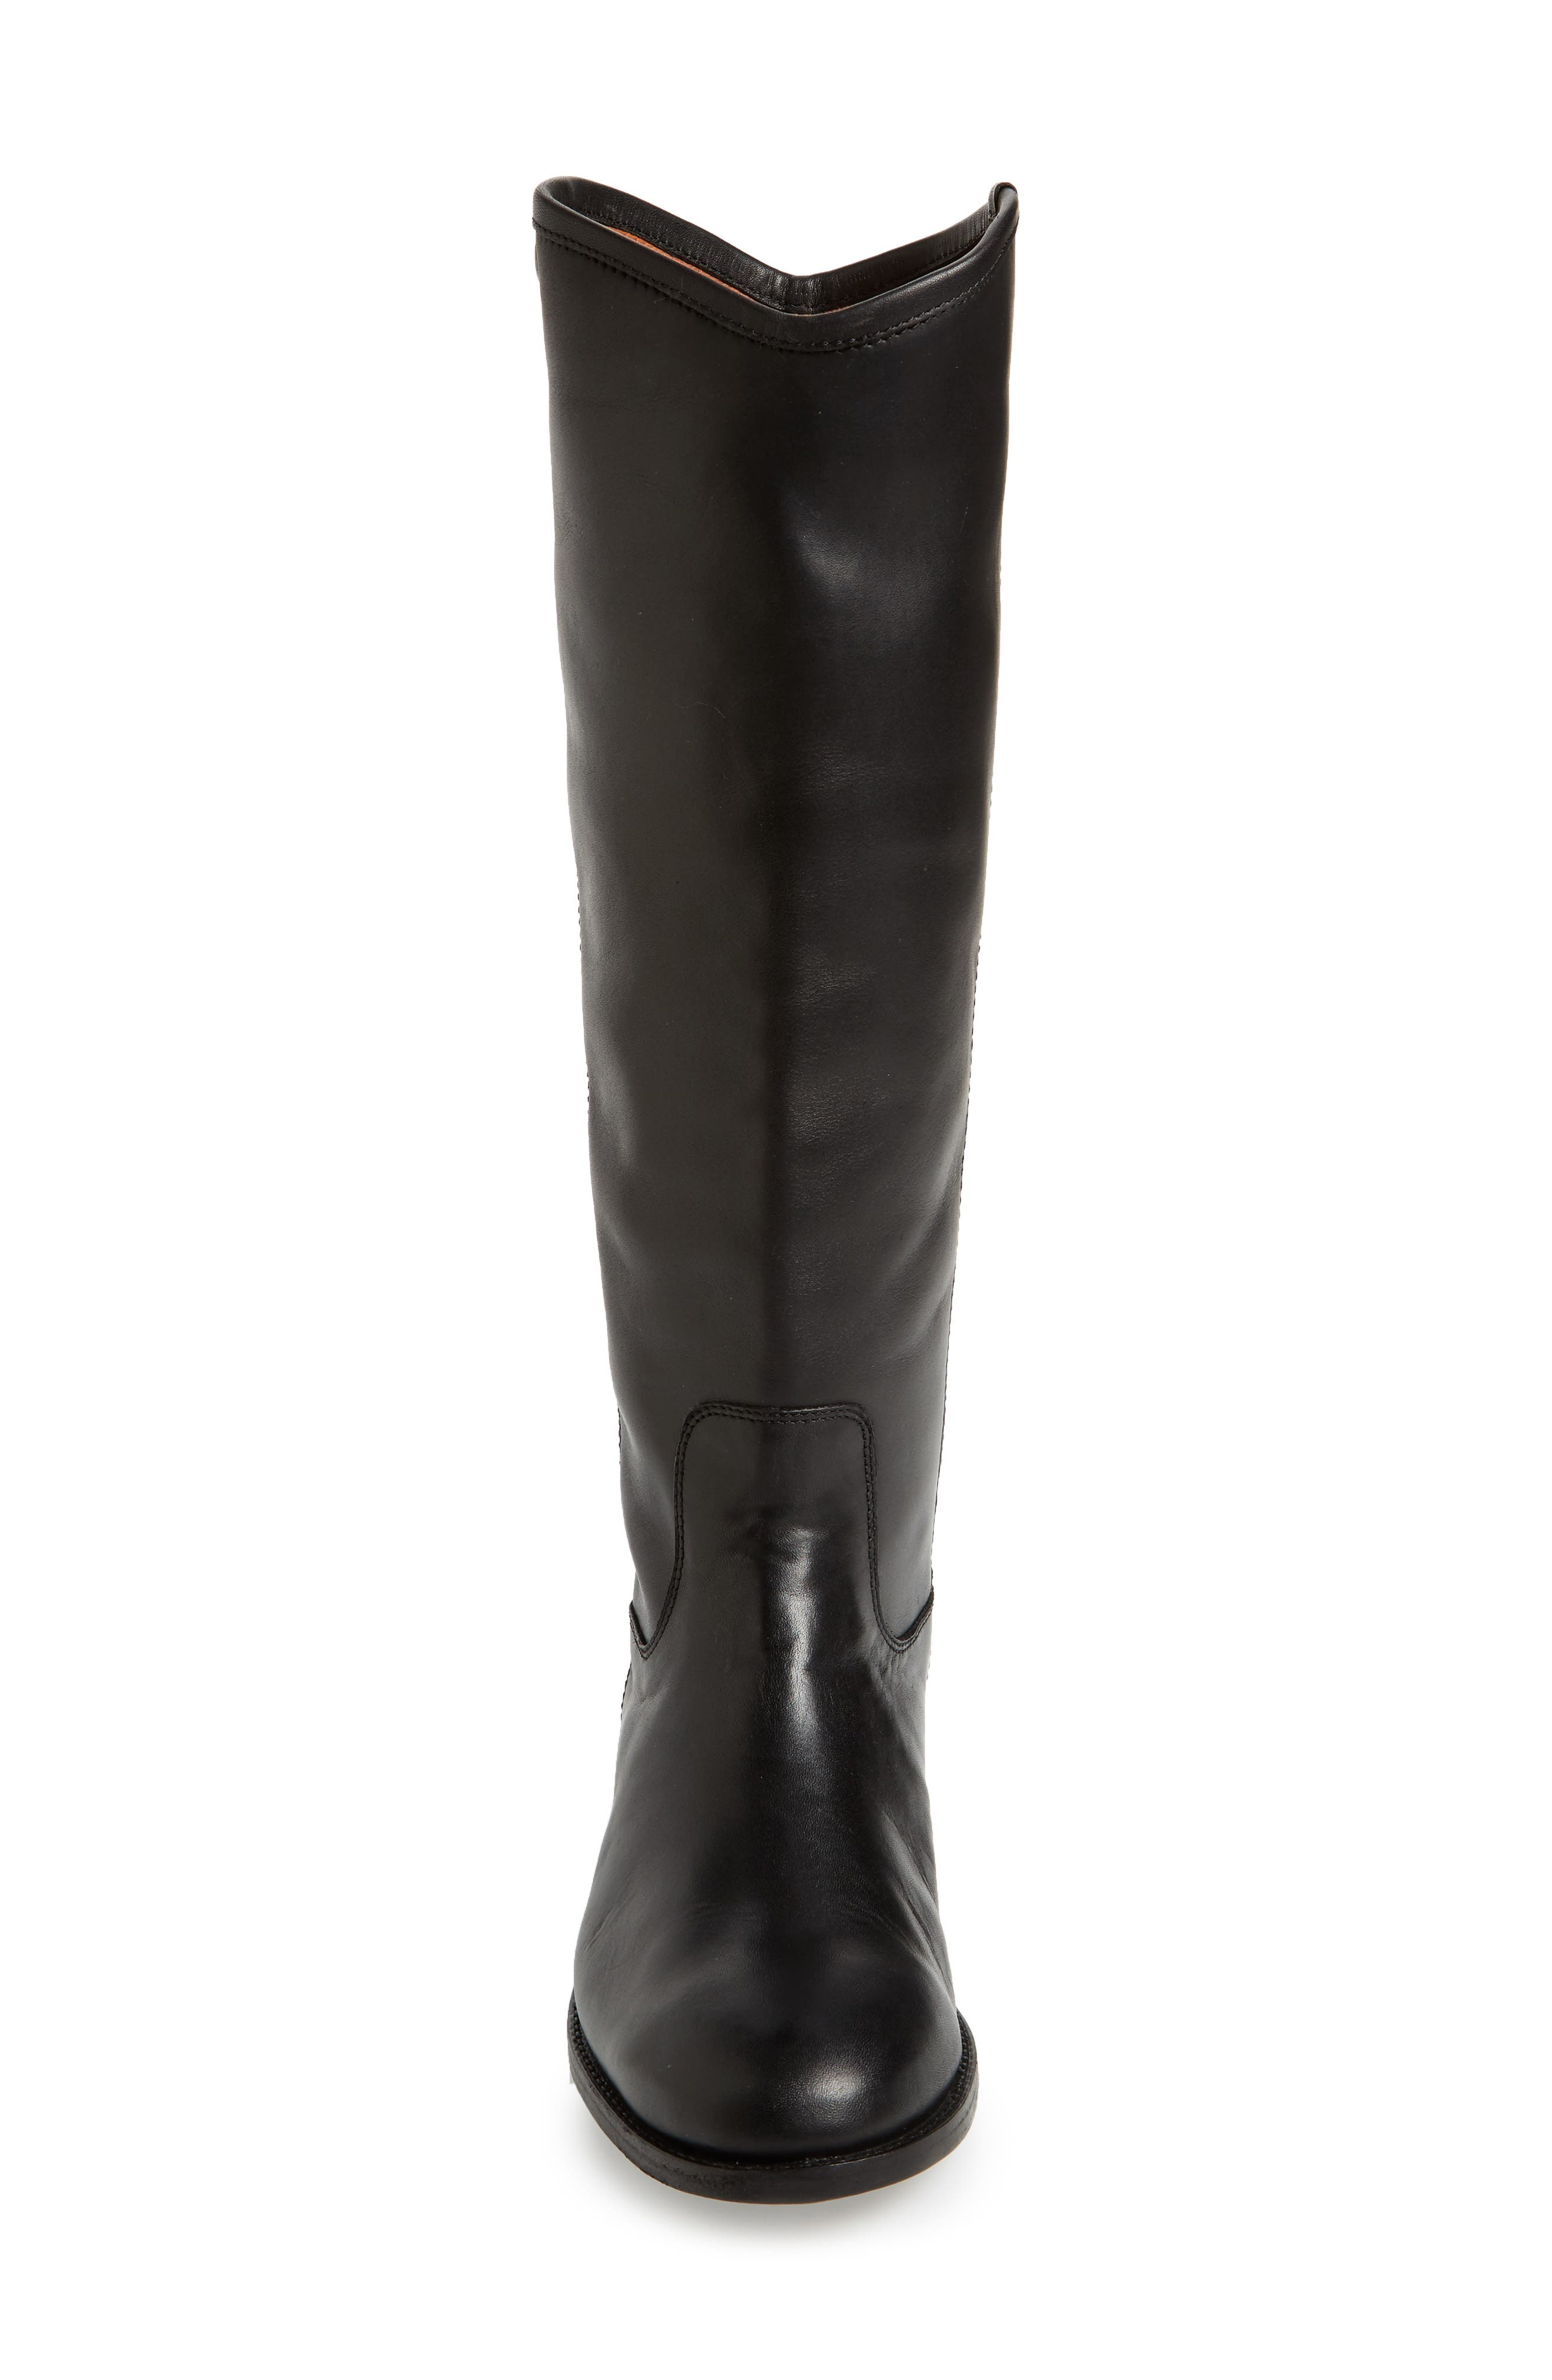 FRYE, Melissa Button 2 Knee High Boot, Alternate thumbnail 4, color, BLACK LEATHER